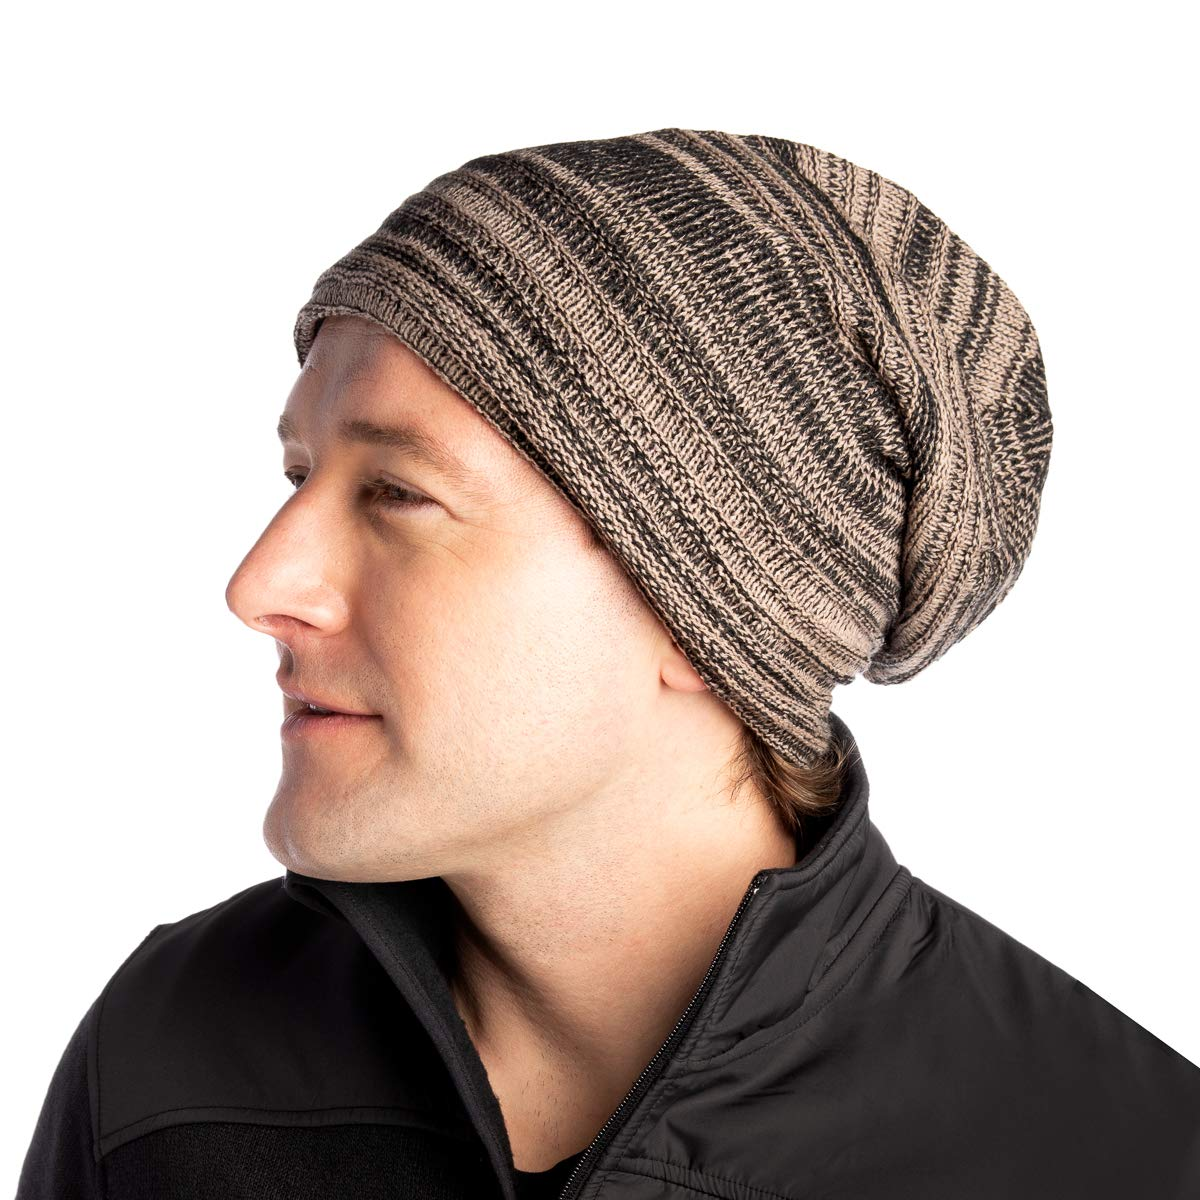 a5e5680e9669 DG Hill Mens Beanie Hat Long Slouchy Striped Ribbed Knit Hat Lightweight  Thick Brown/Black